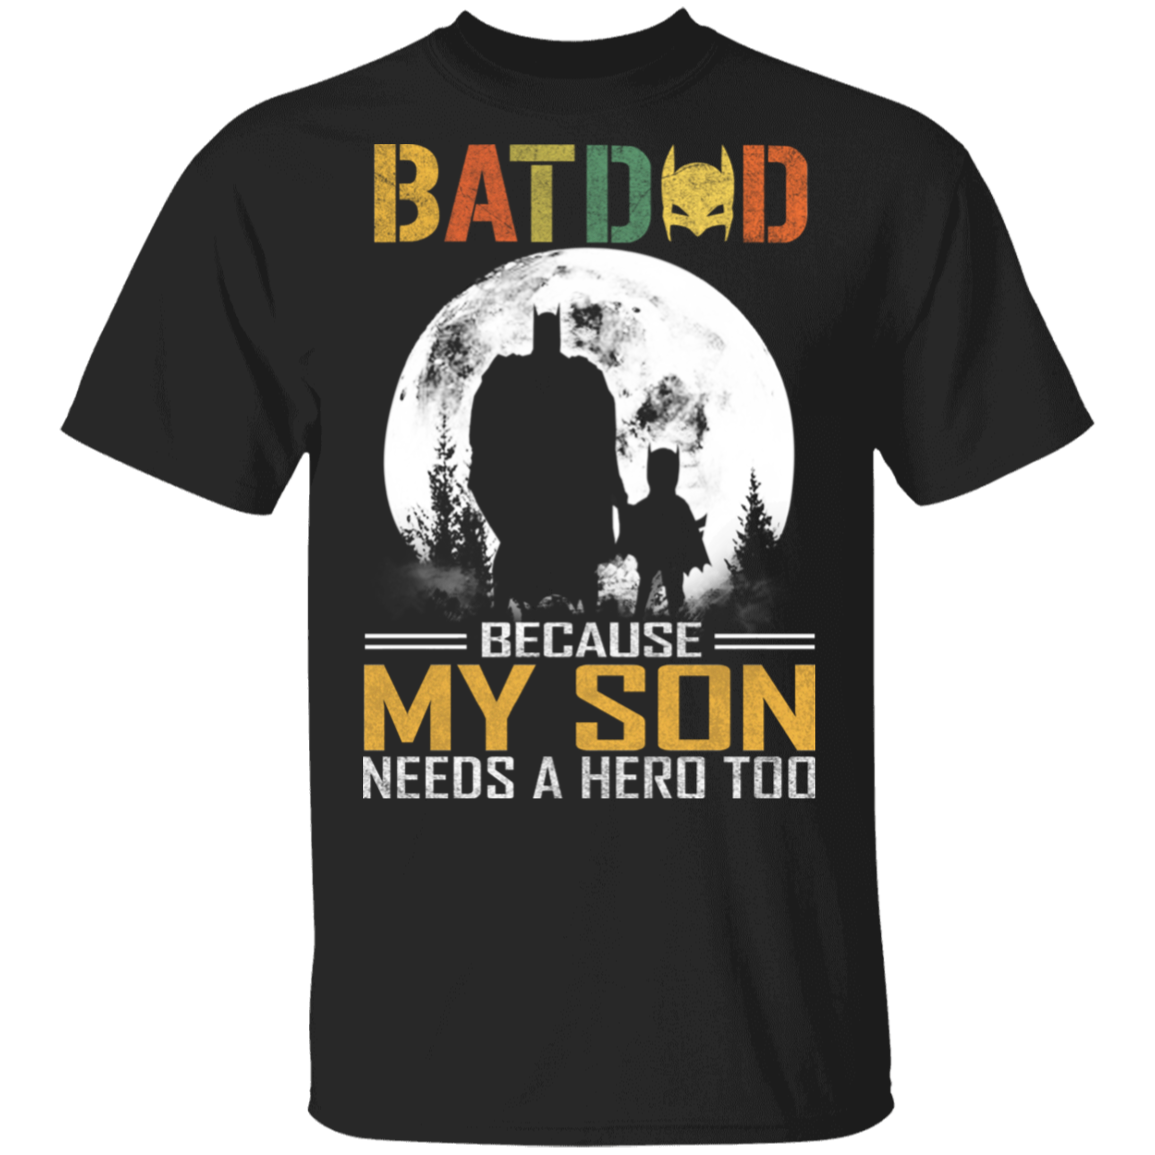 Batdad Because My Son Needs A hero Too T-Shirt Father's day Gift From Son